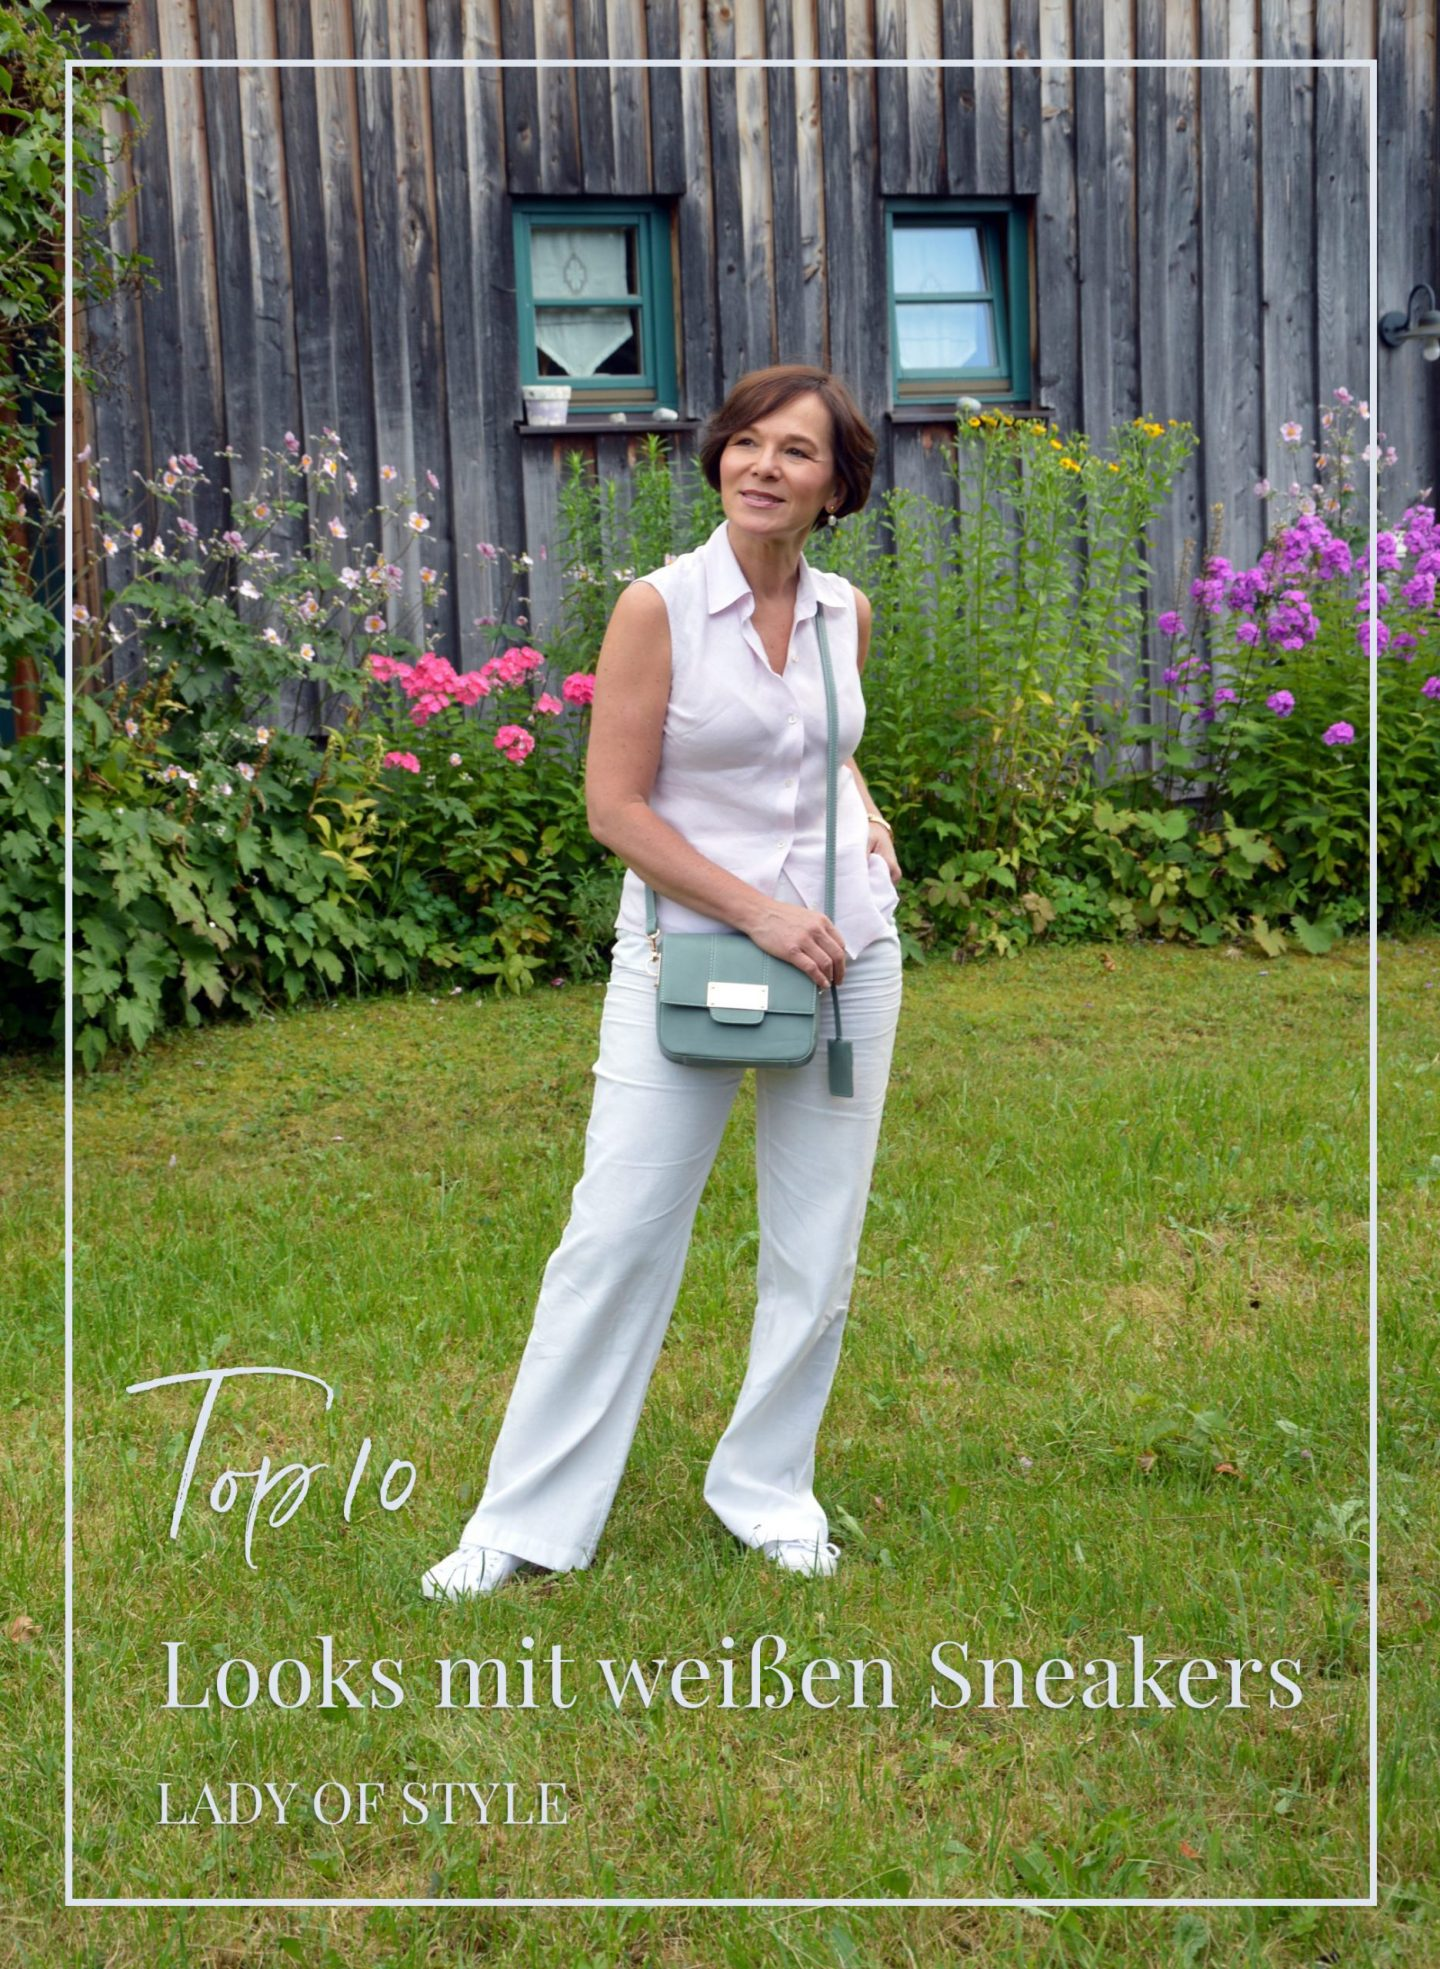 LadyofStyle Sommerlook Leinenhose Sneakers 50plus Blogger